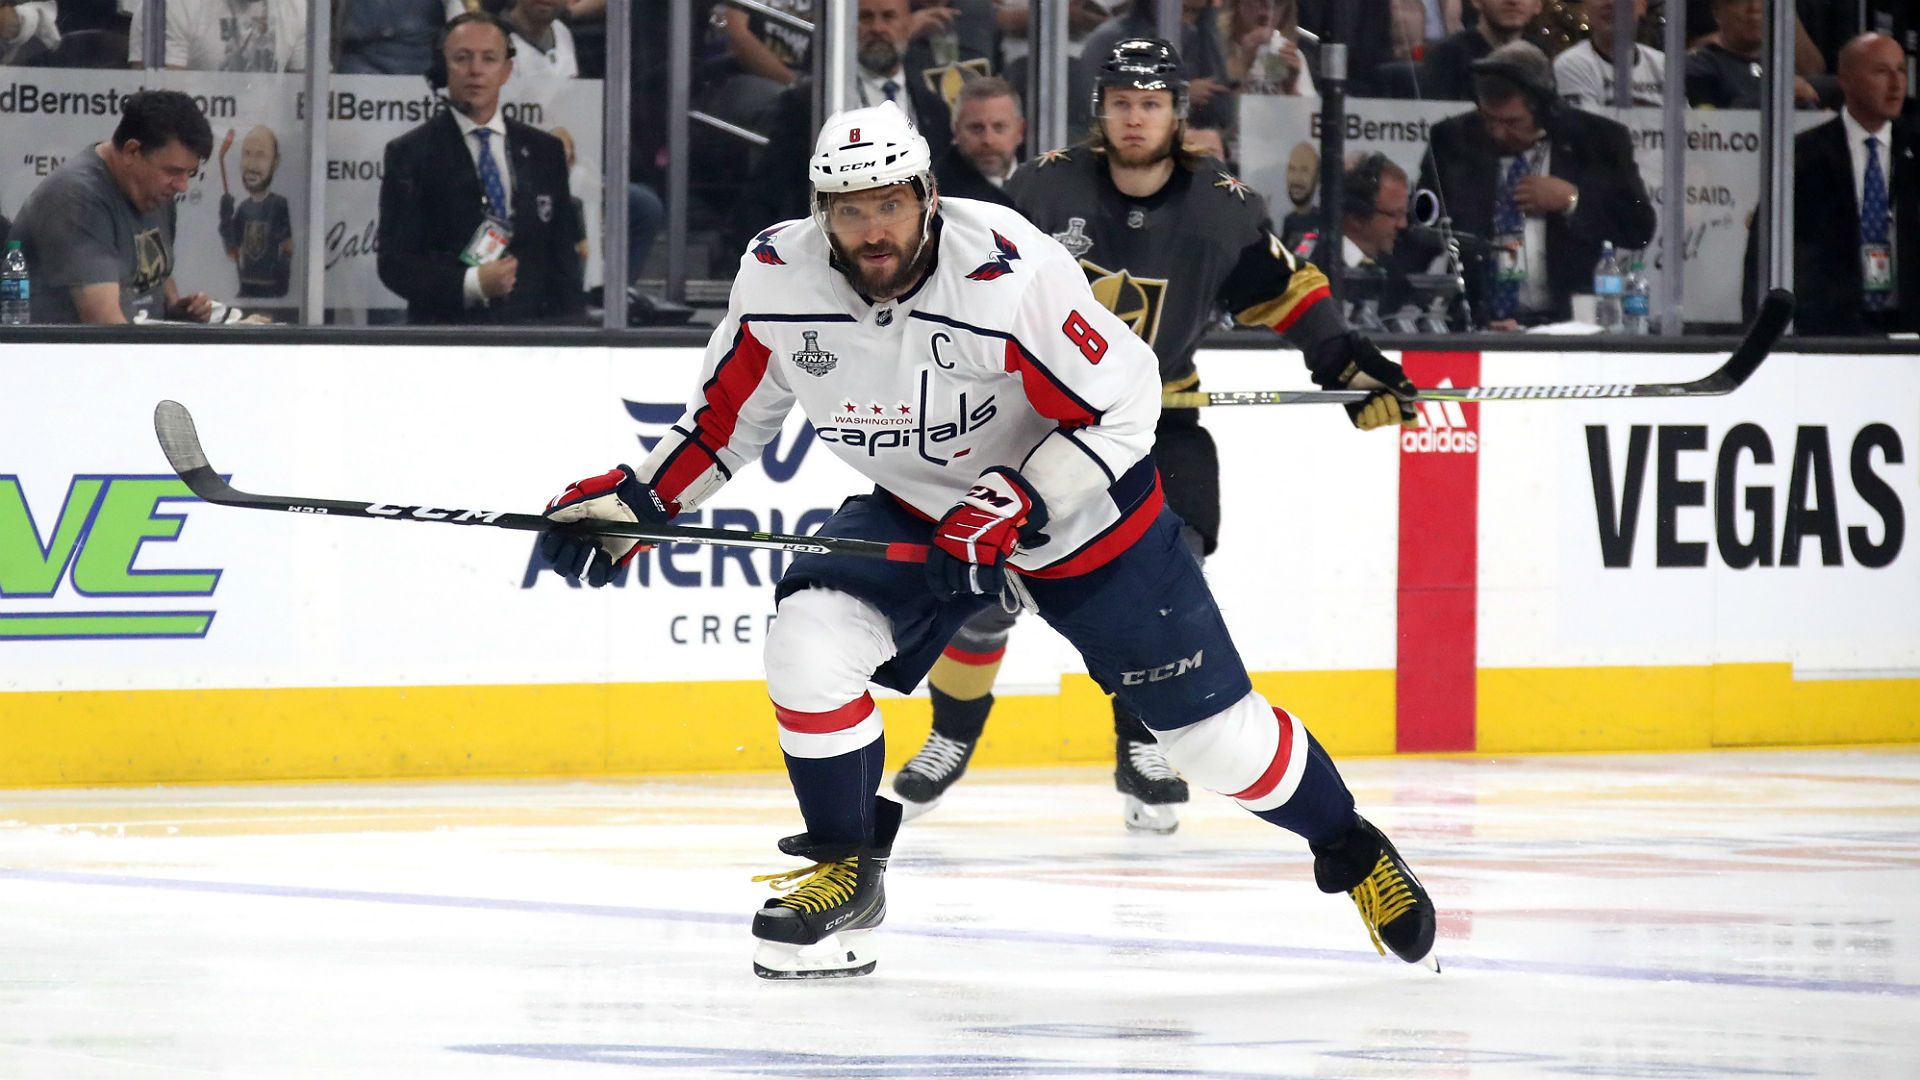 Capitals' suffocating pressure is frustrating Golden Knights